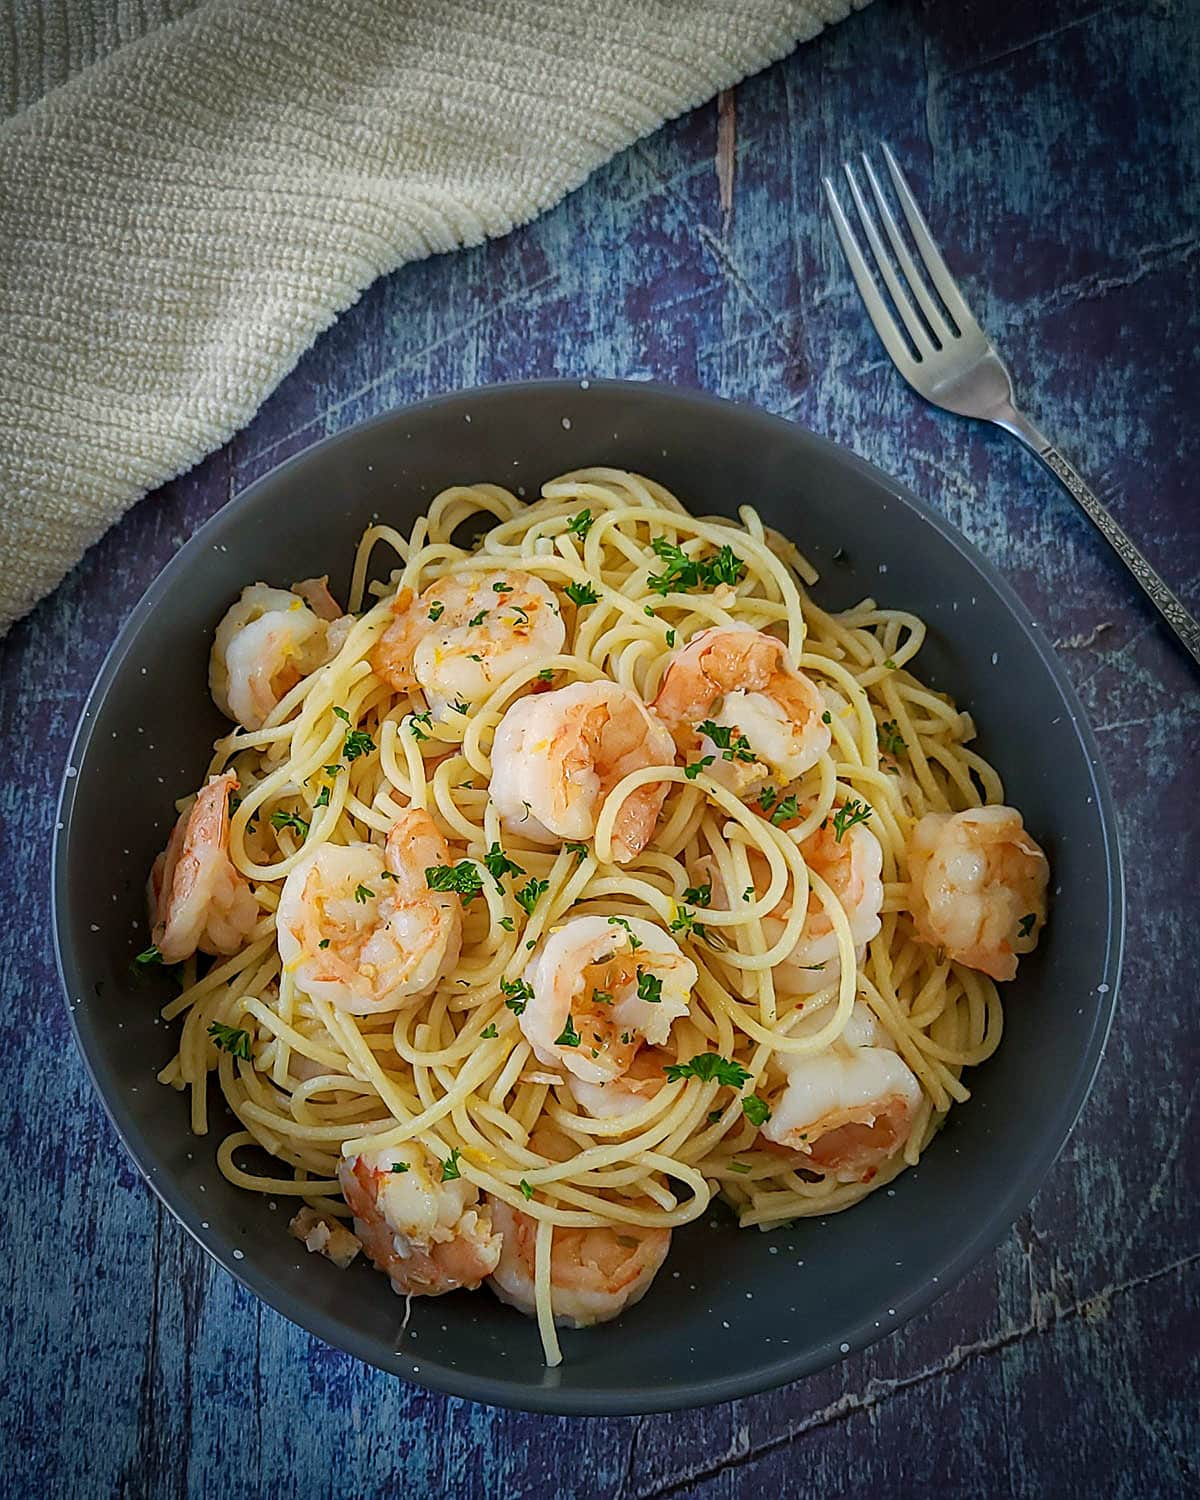 a bowl of spaghetti topped with shrimp